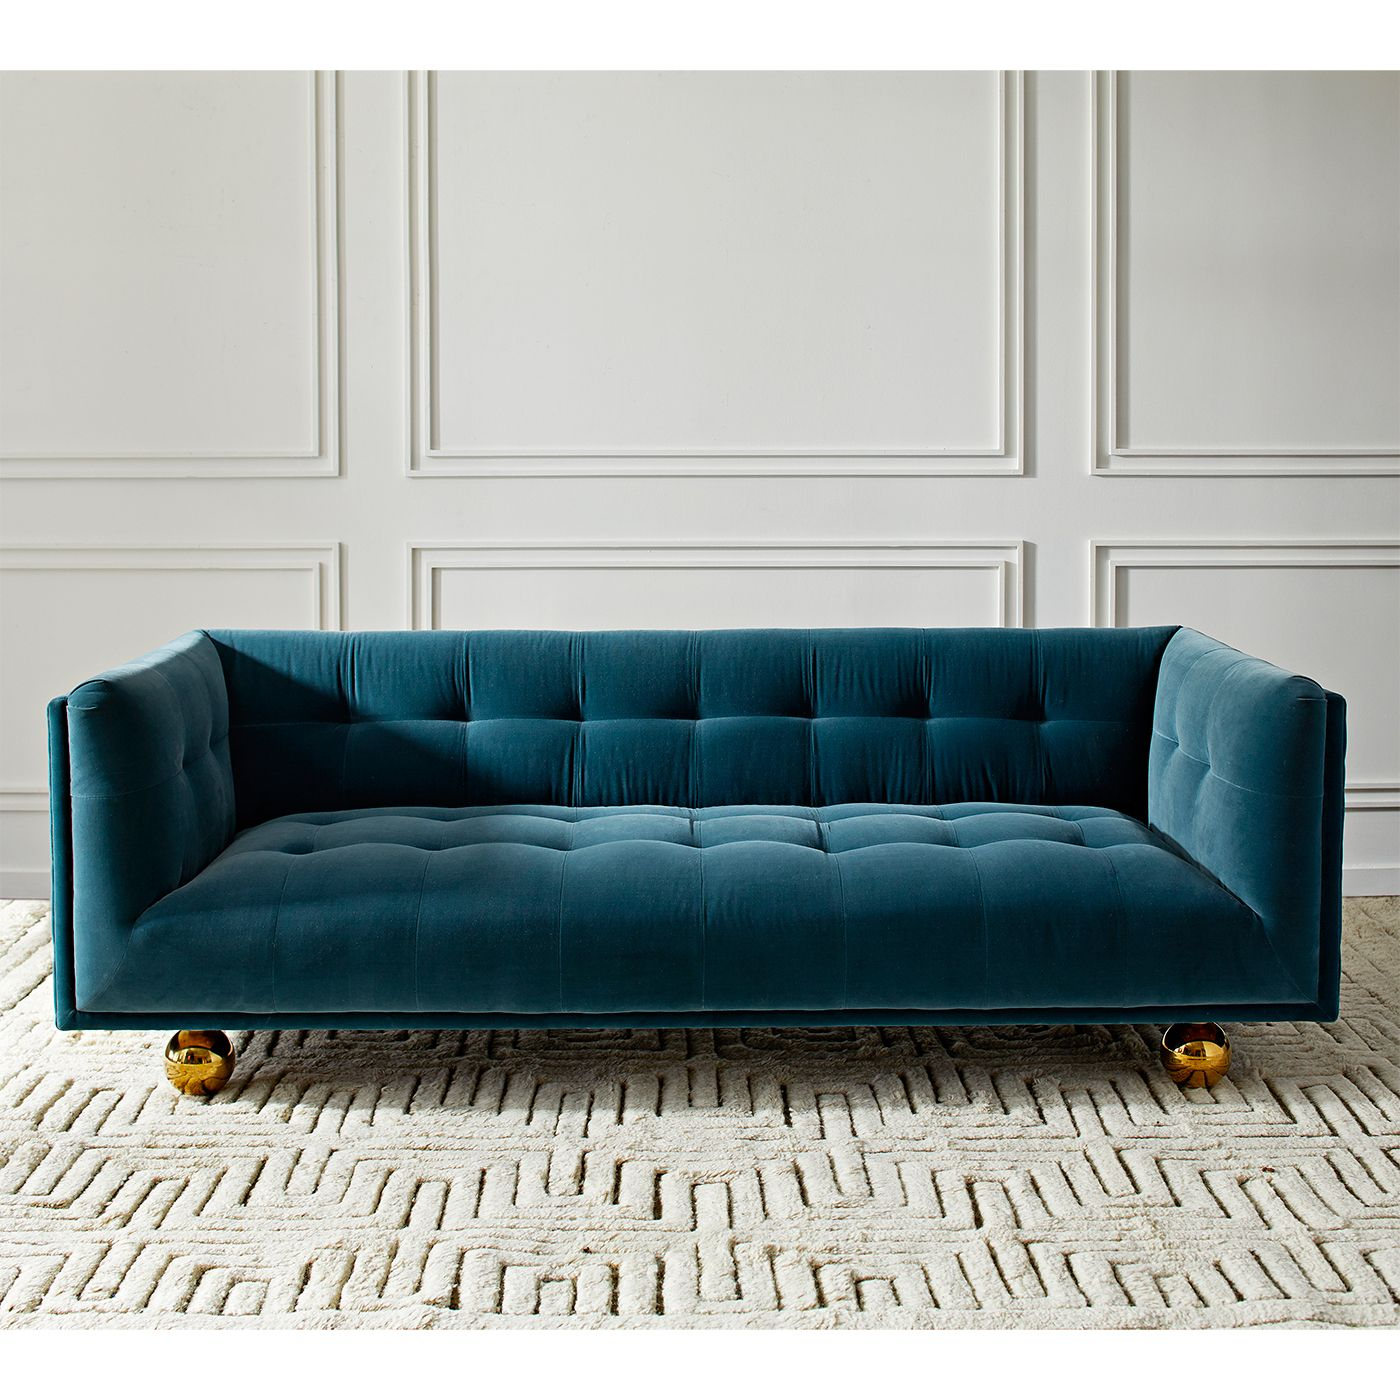 21st Century Chesterfield The Chesterfield sofa s a Modern